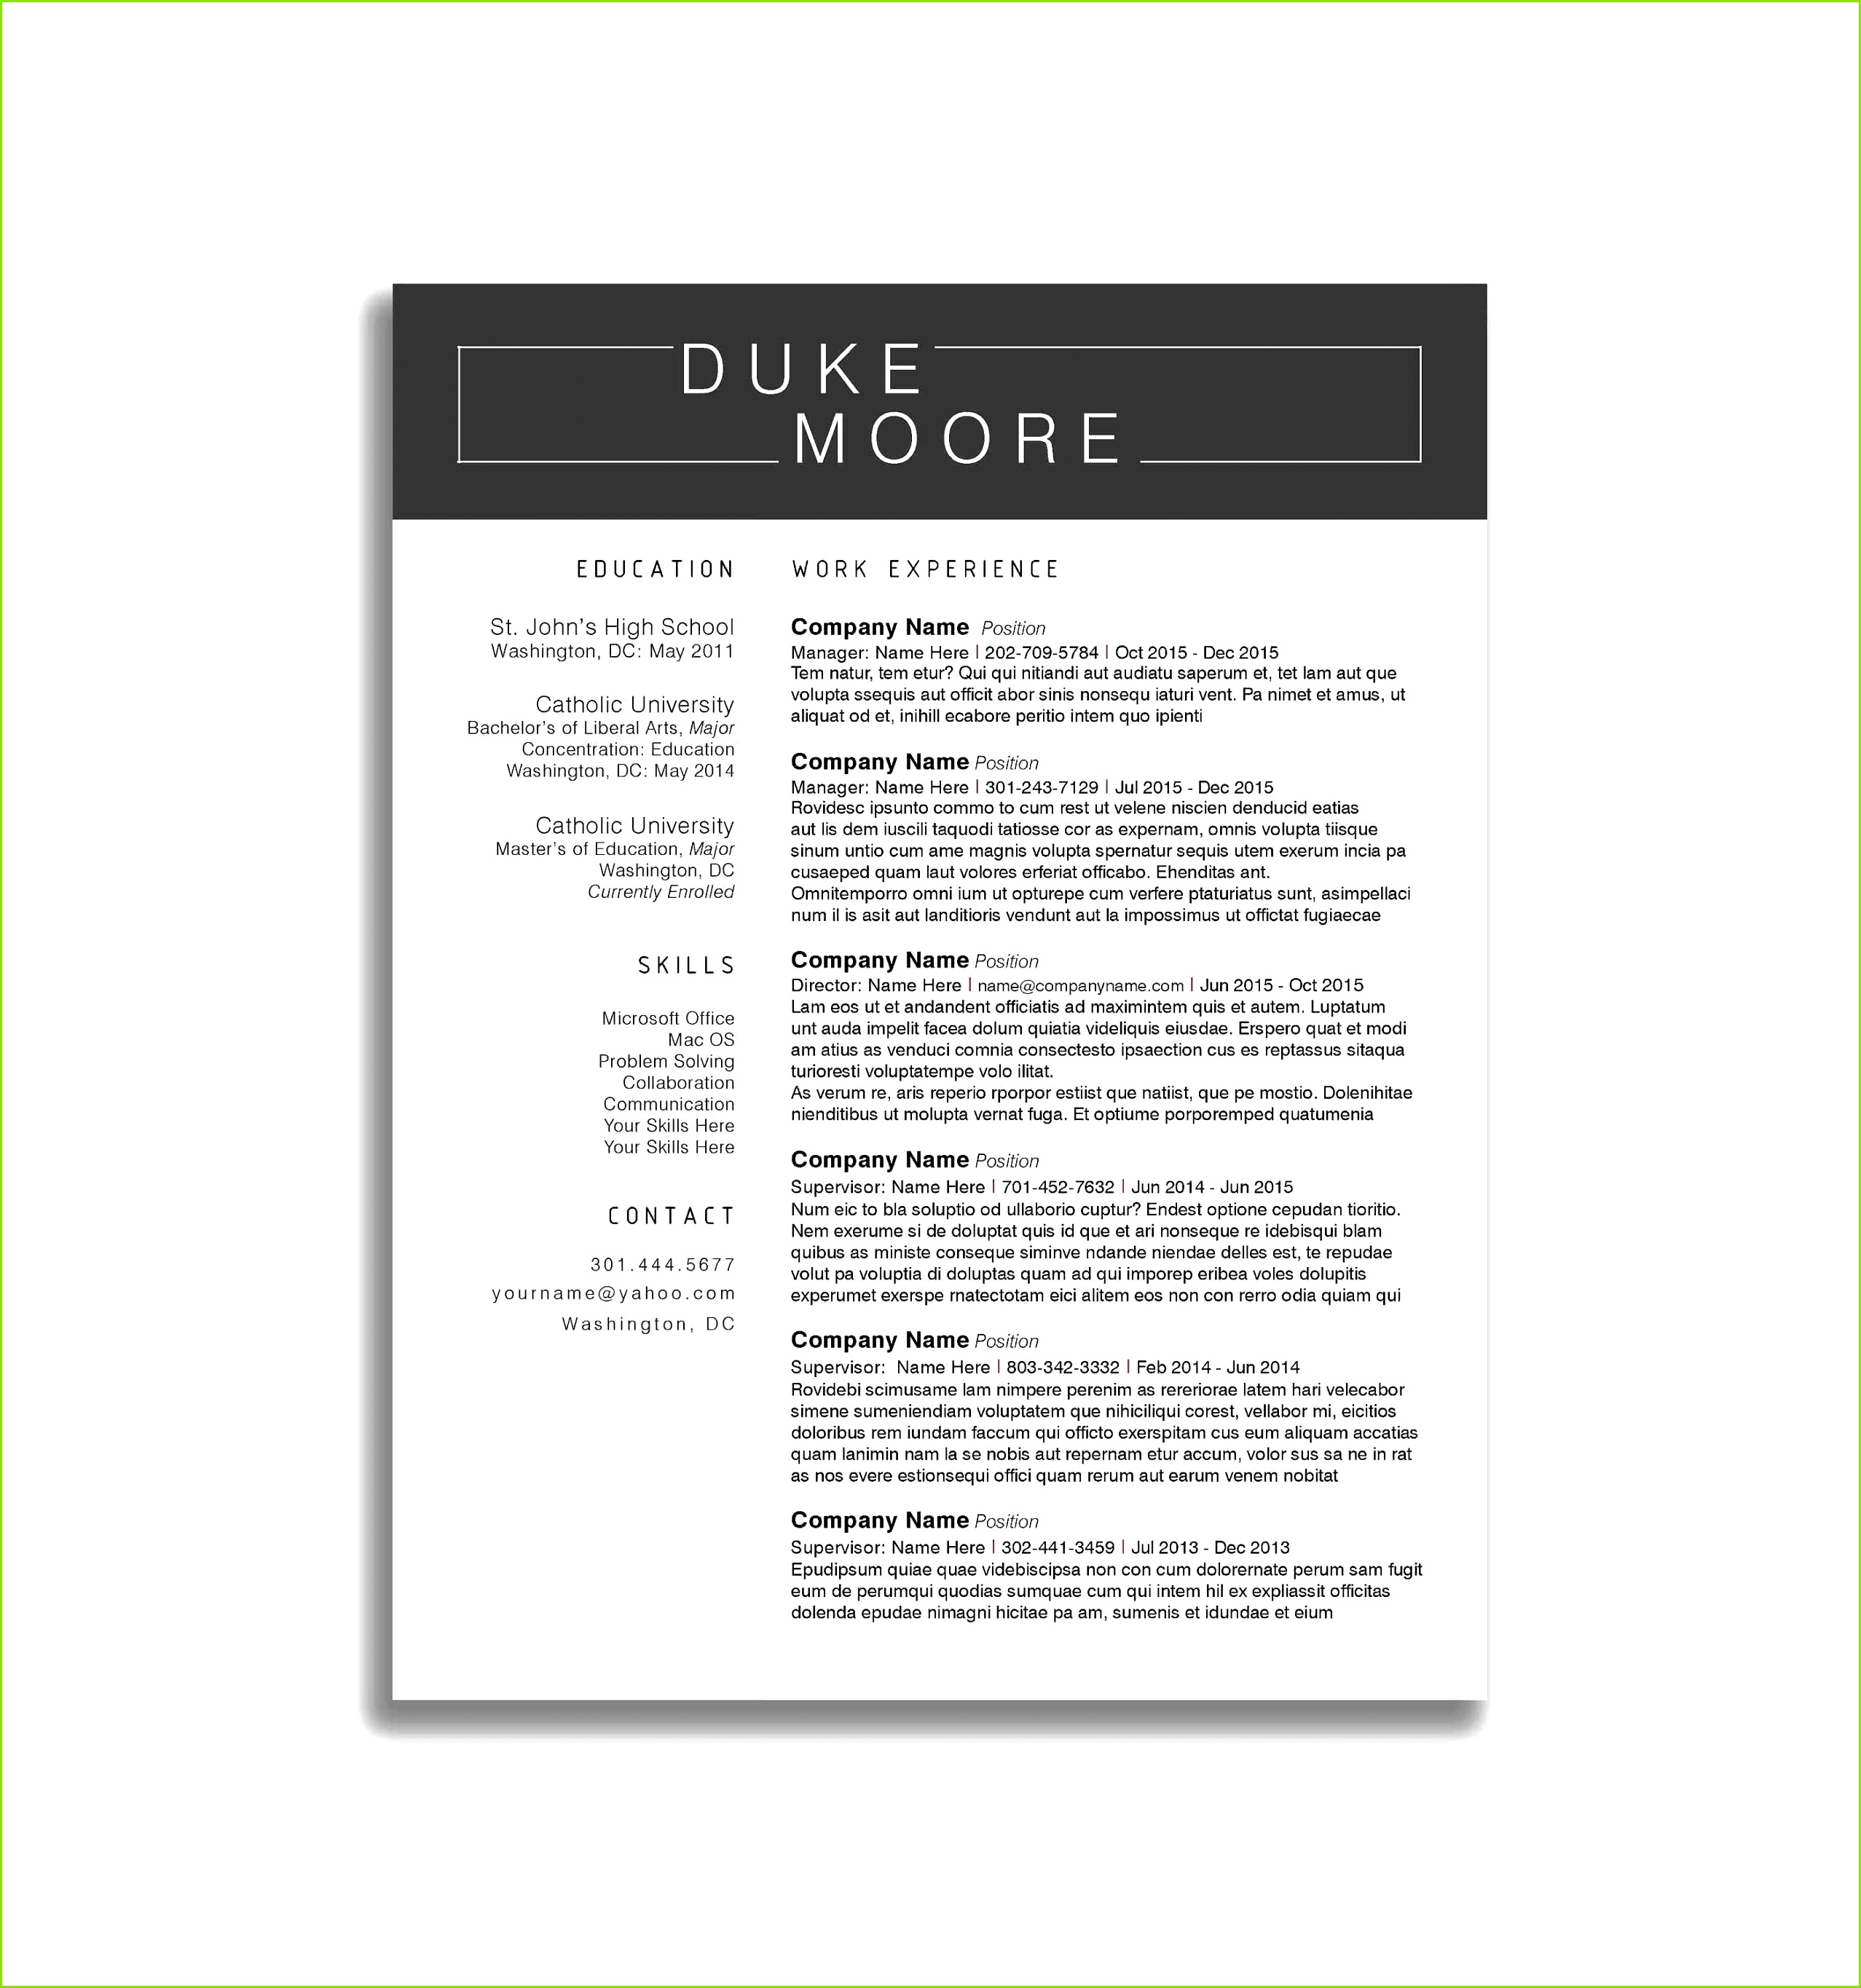 Resume Template Business Manager New Receipt Book Walgreens Examples Sales Job Resumes Bsw Resume 0d